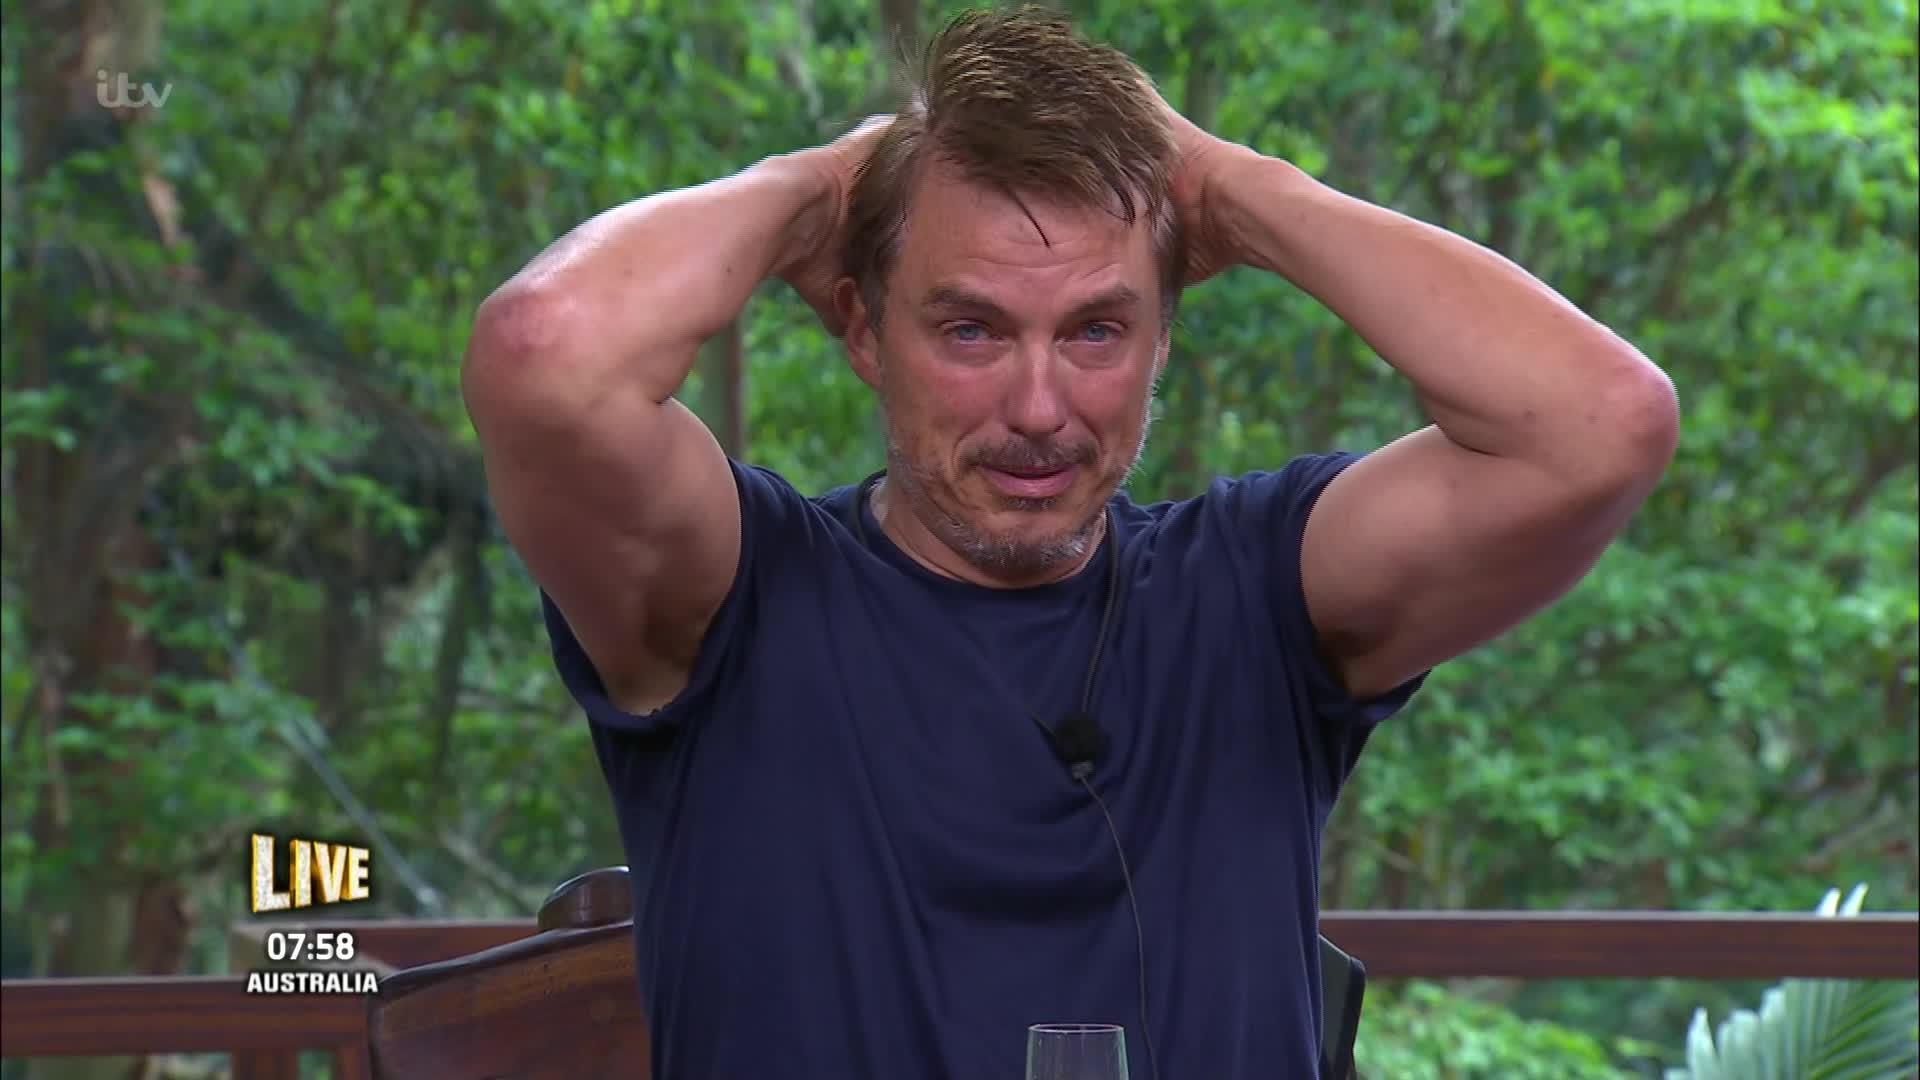 I'm A Celebrity's John Barrowman breaks down in tears as he finishes third place in jungle final